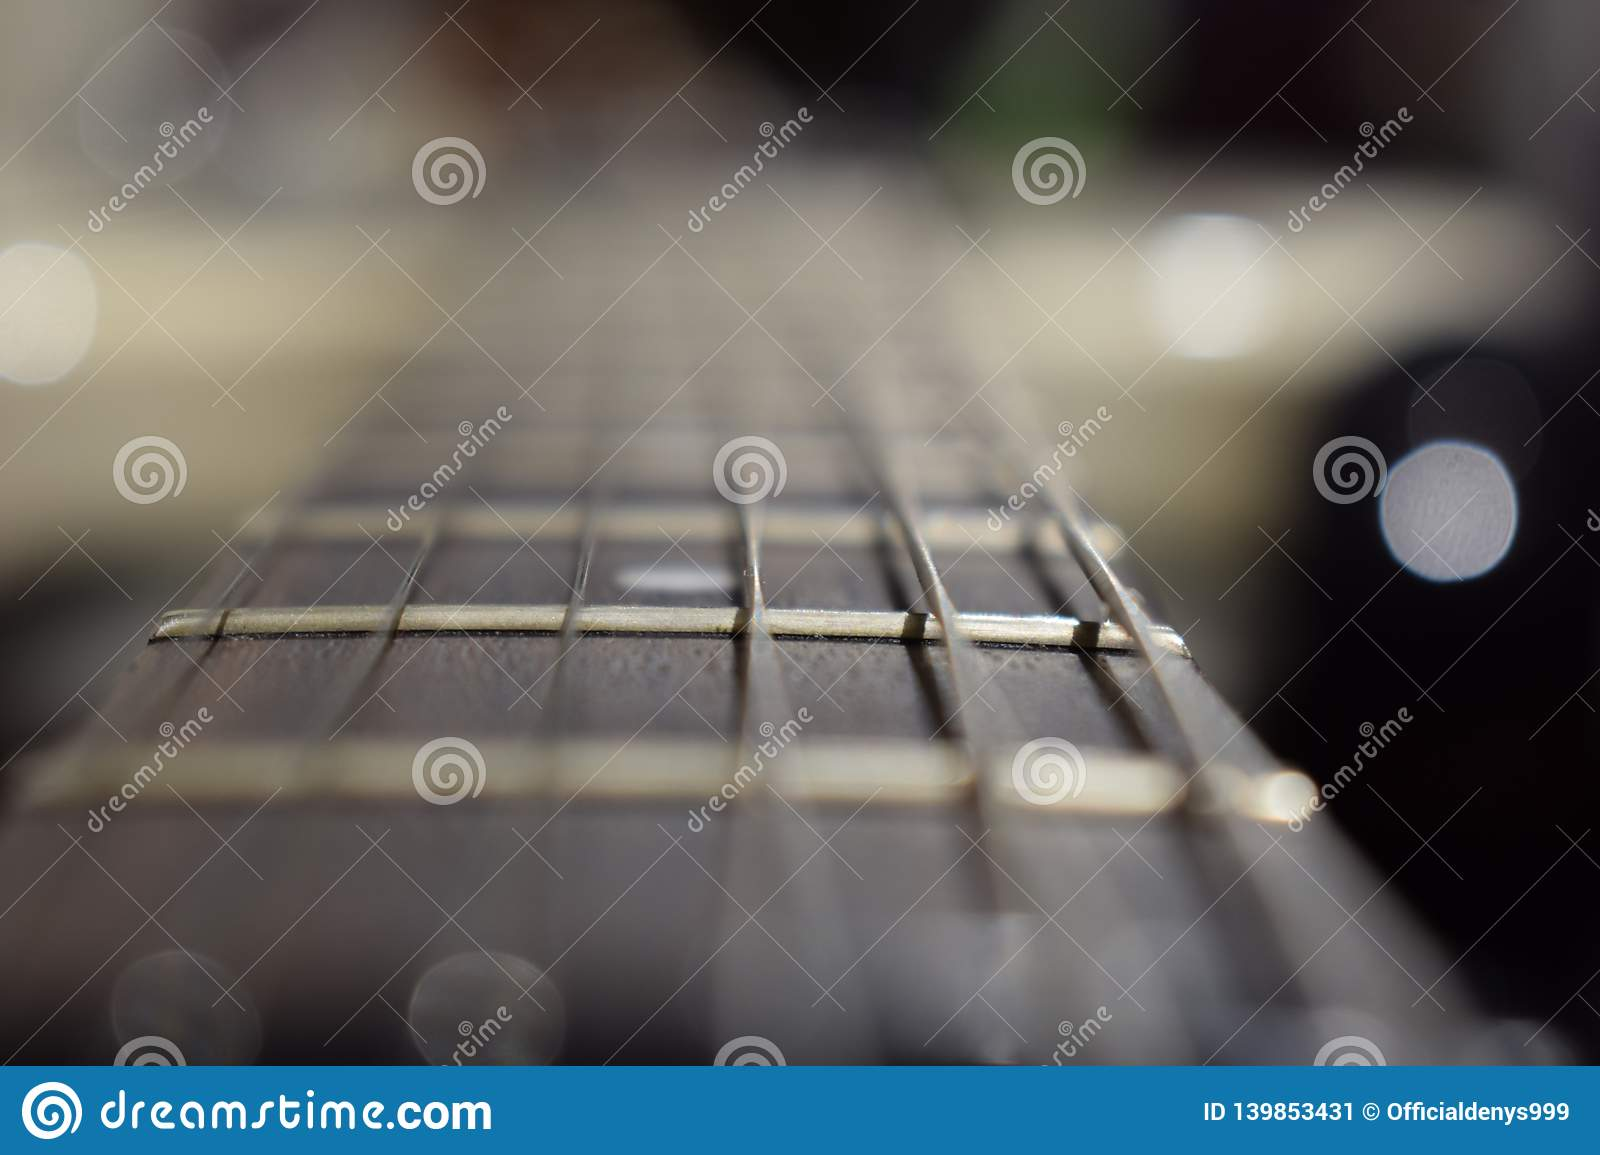 A photo of a guitar neck with strings and a wood texture - the material of a guitar neck. Selective focus on one guitar threshold